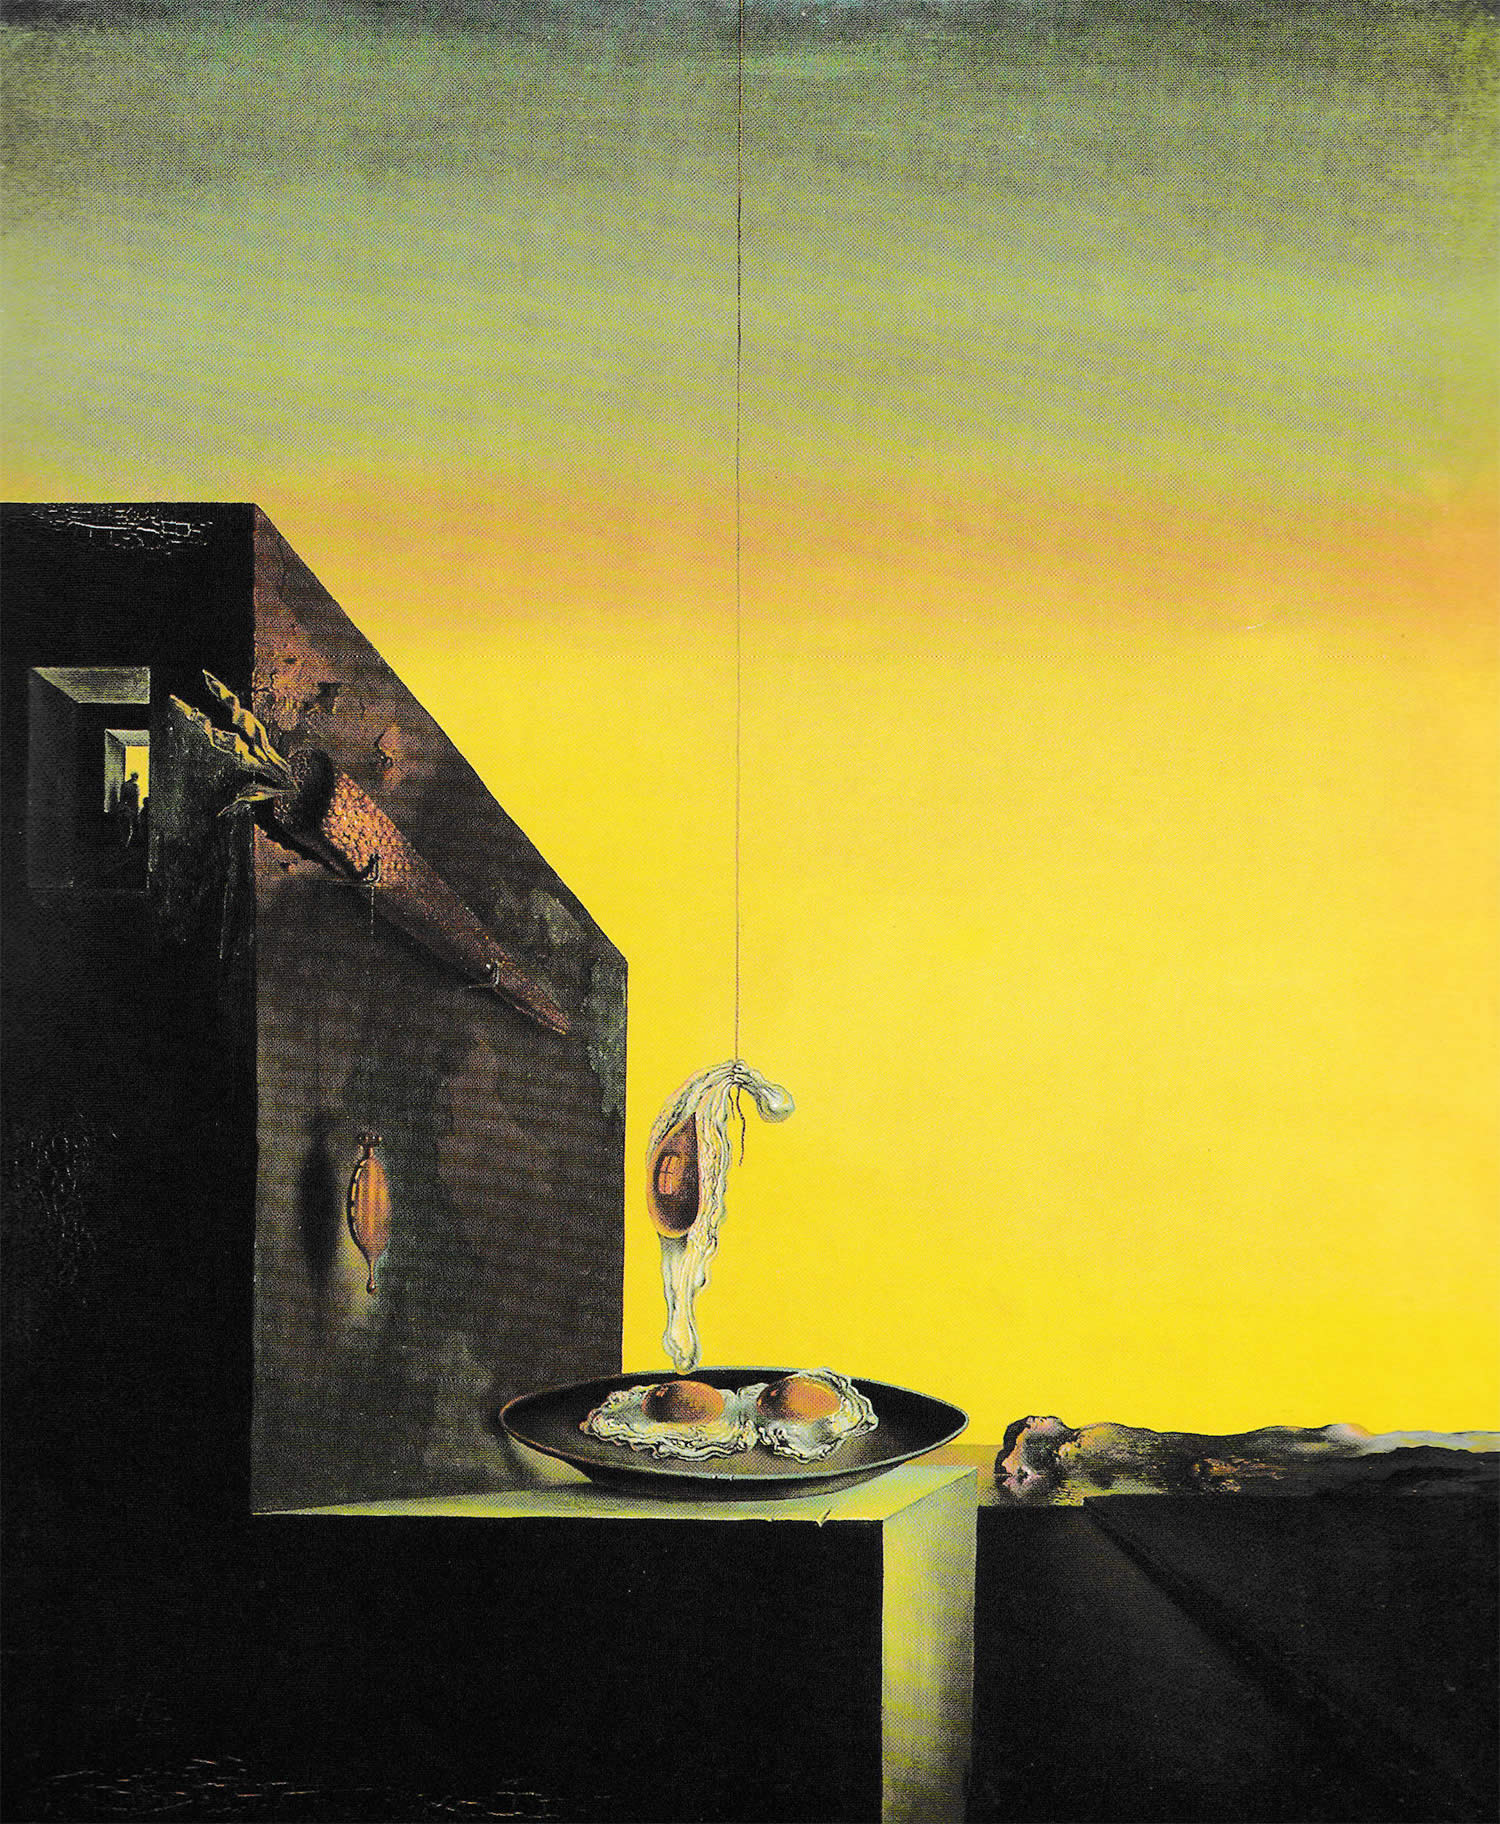 Eggs on the Plate without the Plate, painting by dali